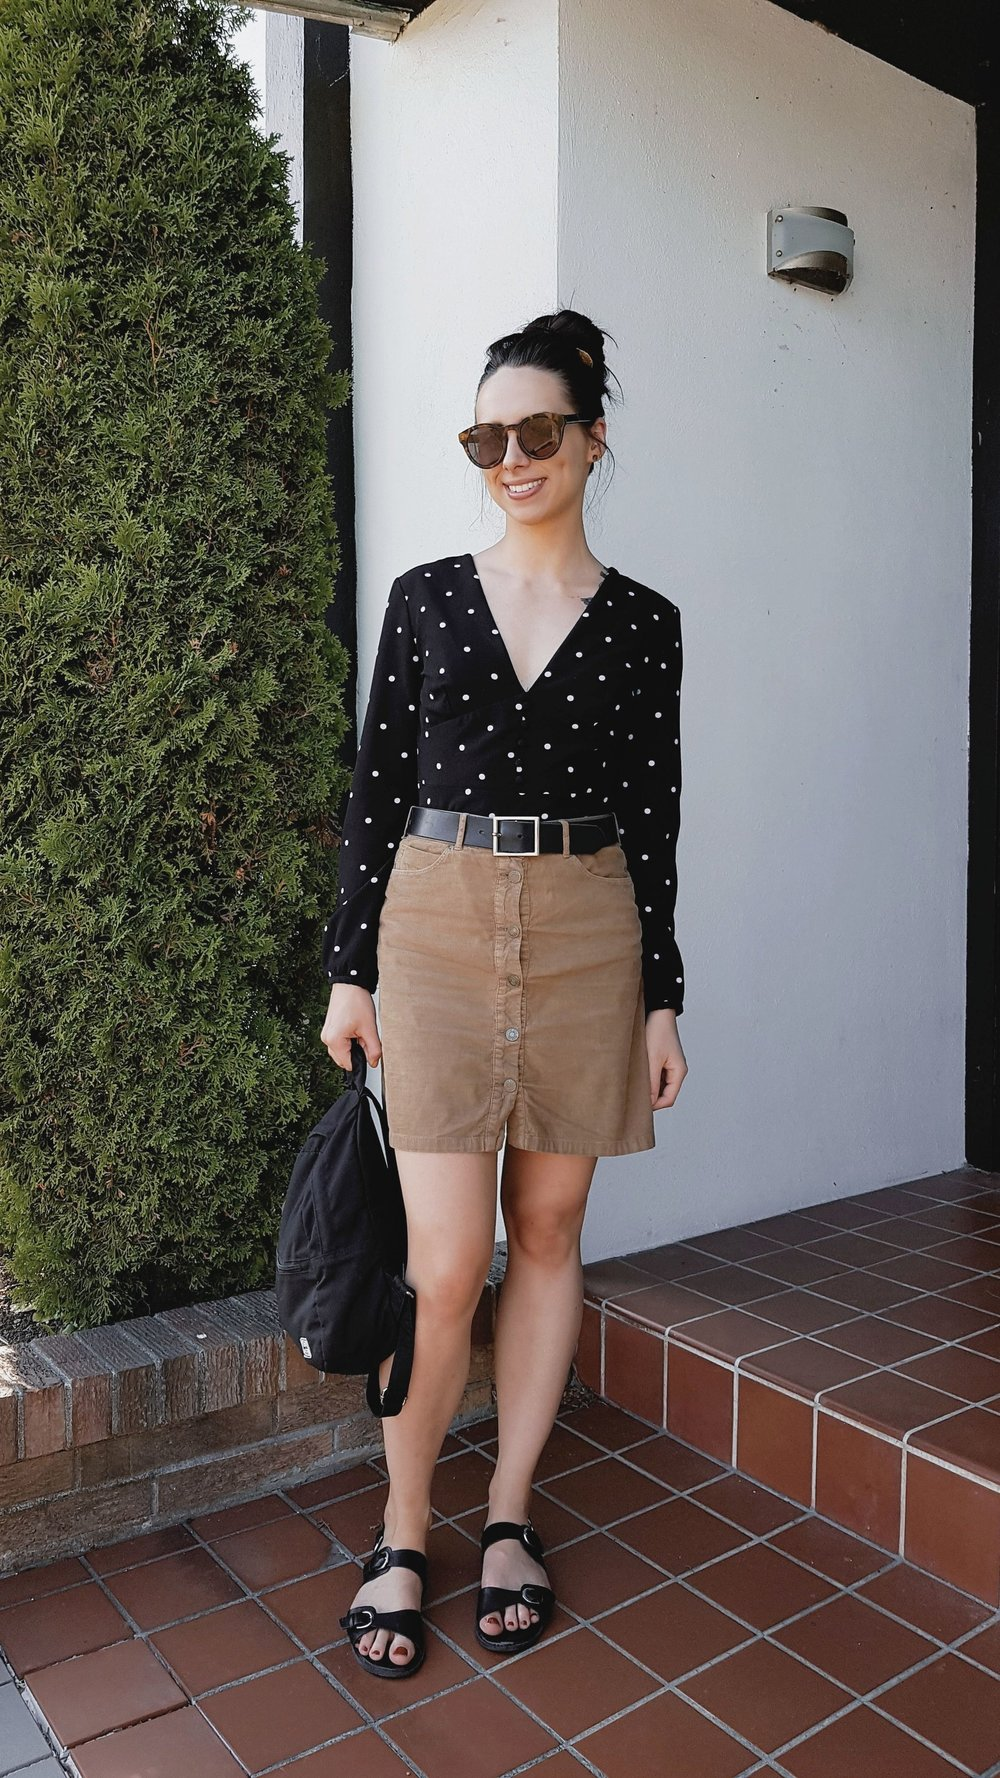 THURSDAY - Dynamite blouse, Zara skirt, Forever 21 sandals, Herschel backpack, Oak+Fort sunnies